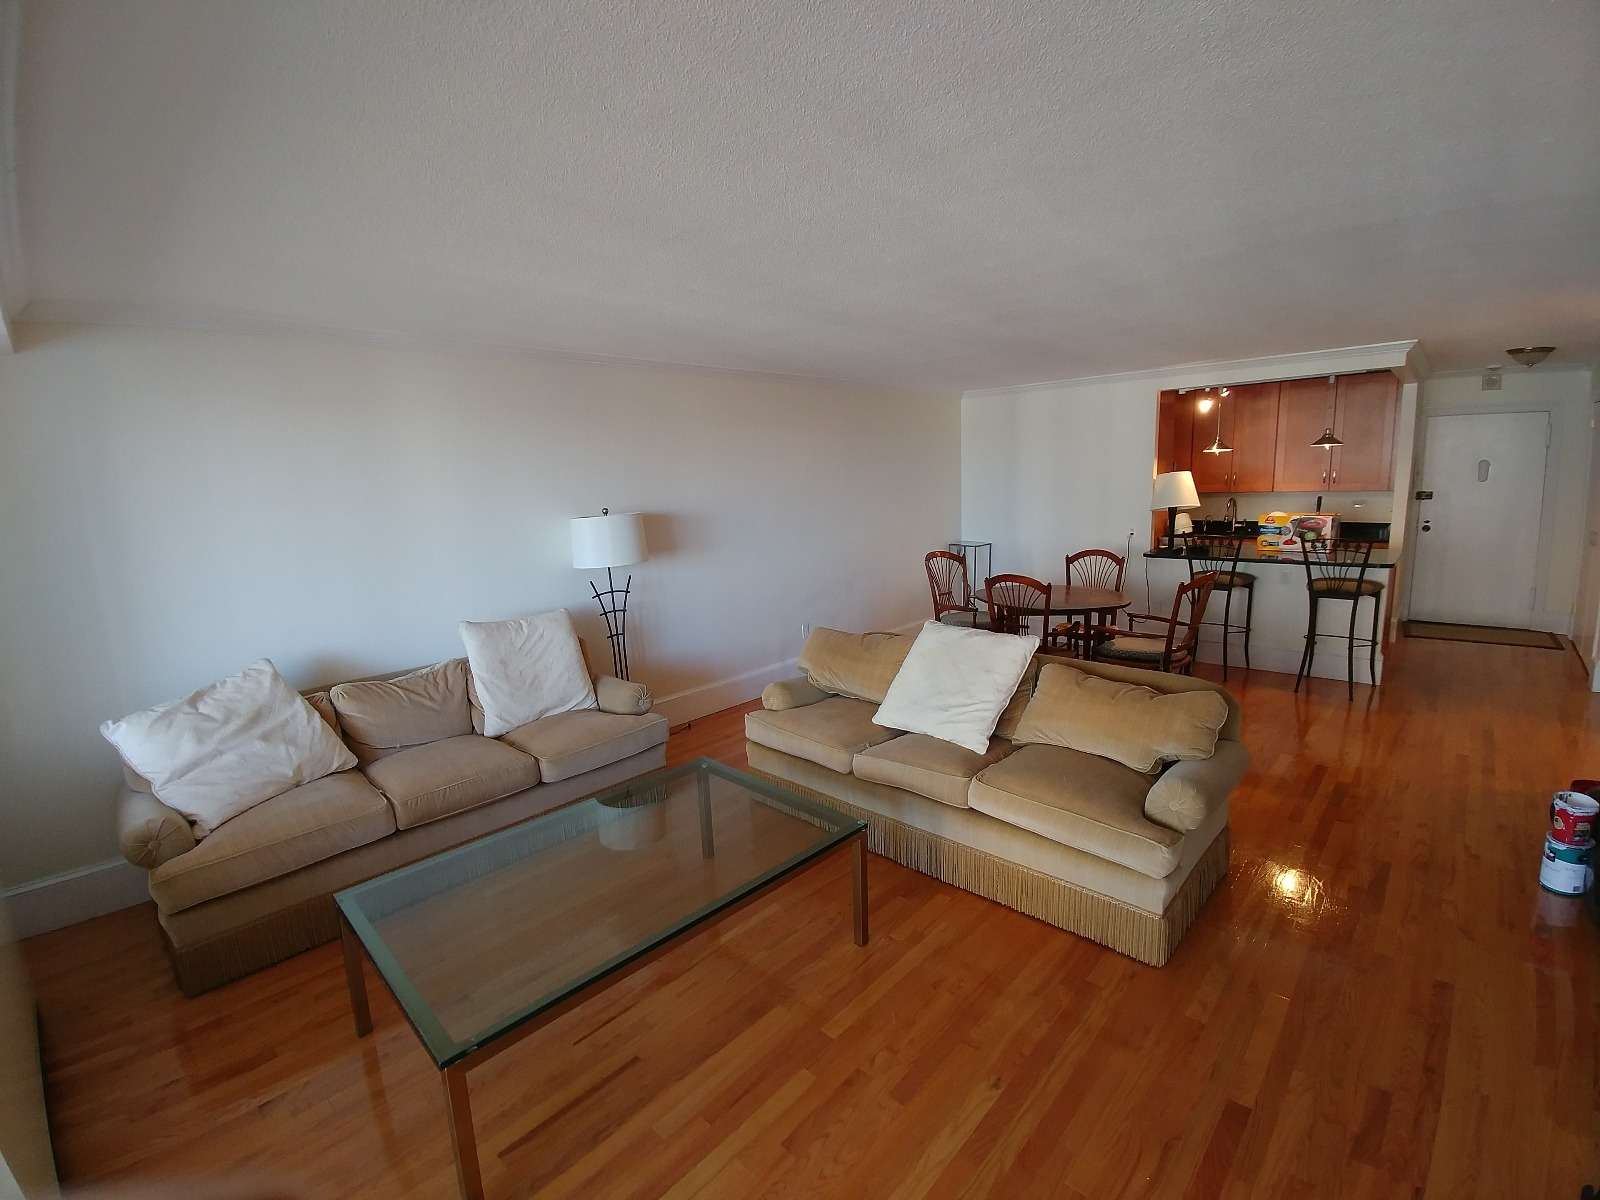 1 Bed, 1 Bath apartment in Boston, West End for $2,700